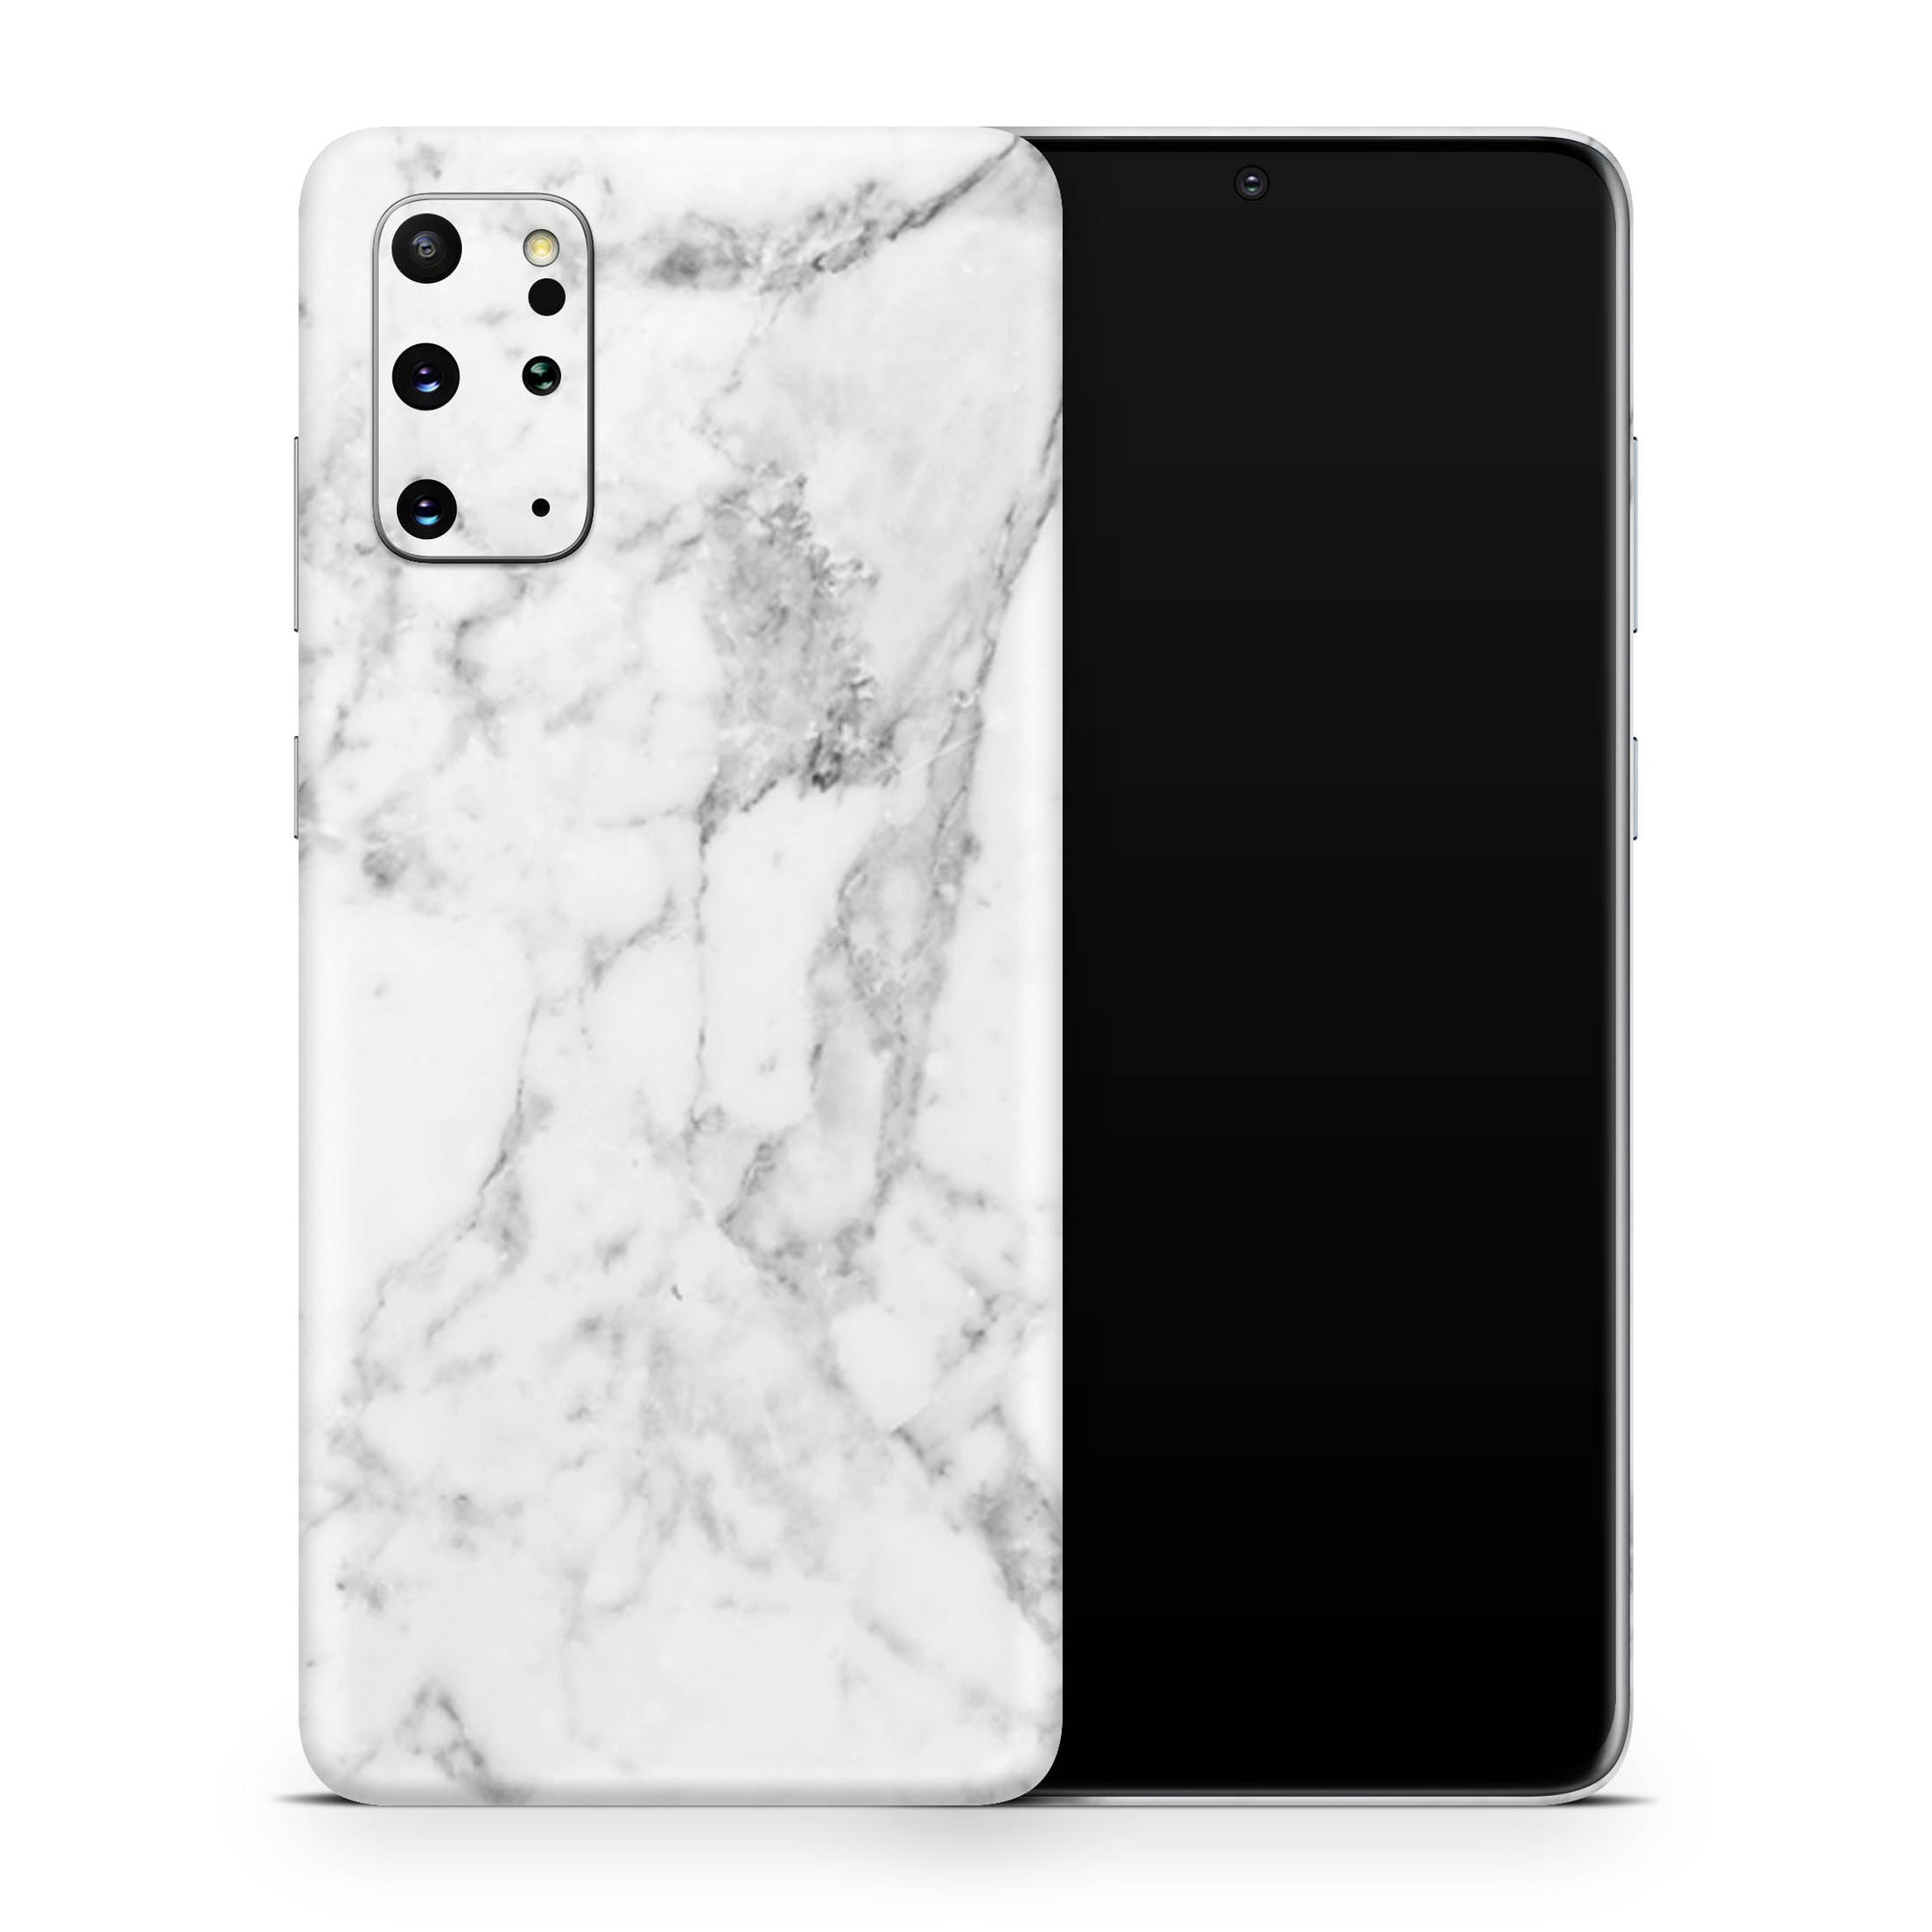 White Marble Galaxy S20 Plus Skin + Case-Uniqfind